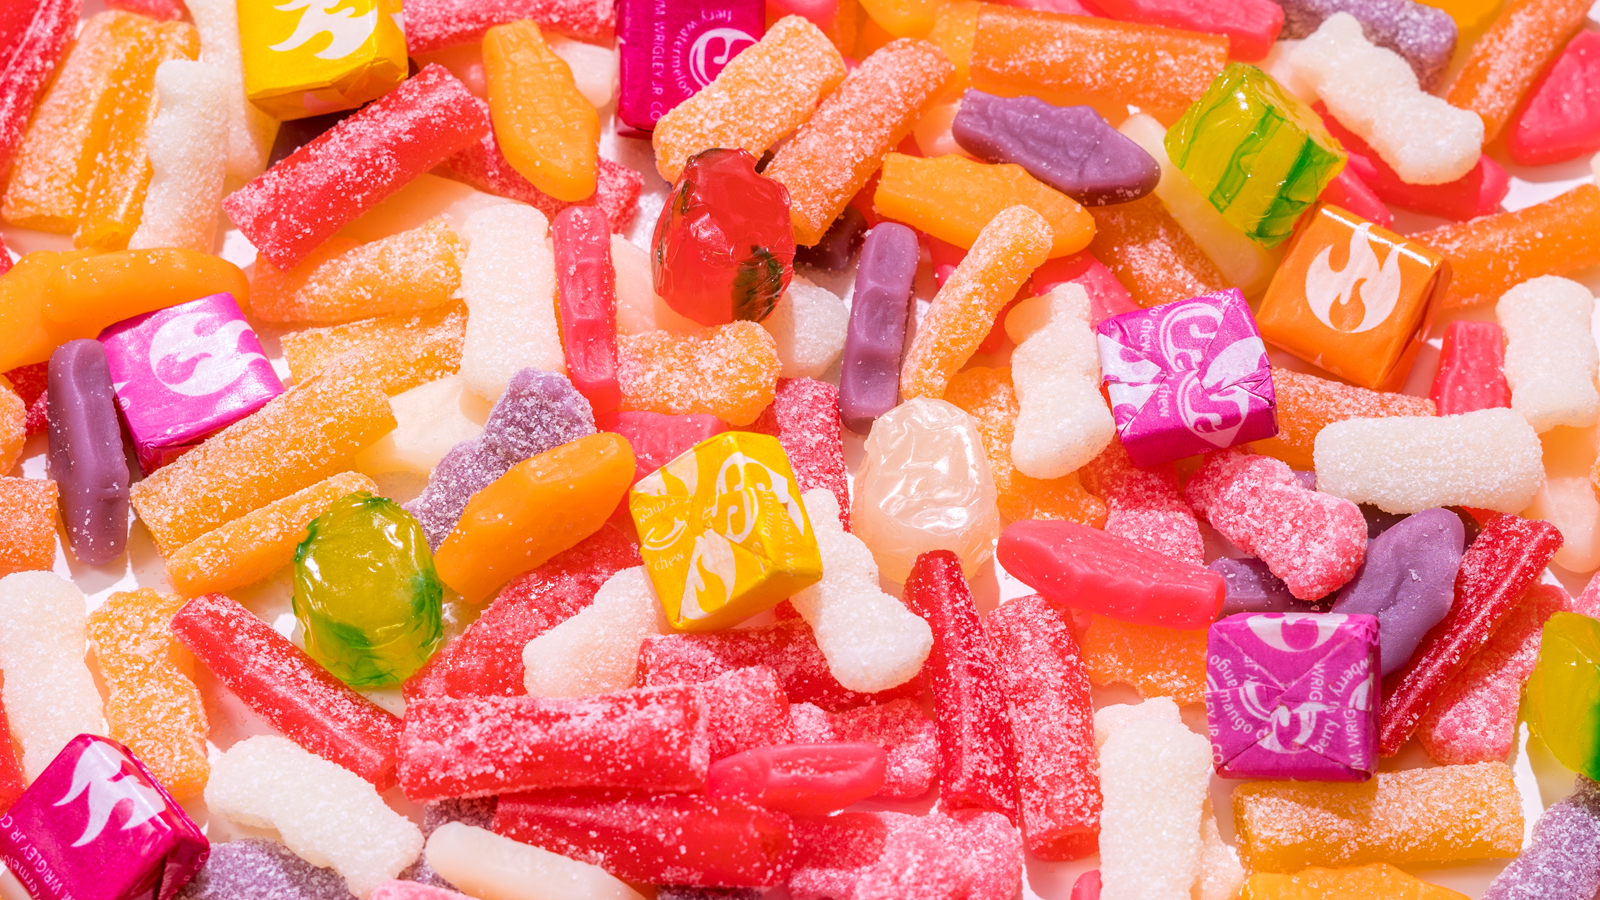 Childhood memories are made each day at...BOYD\'S RETRO CANDY STORE